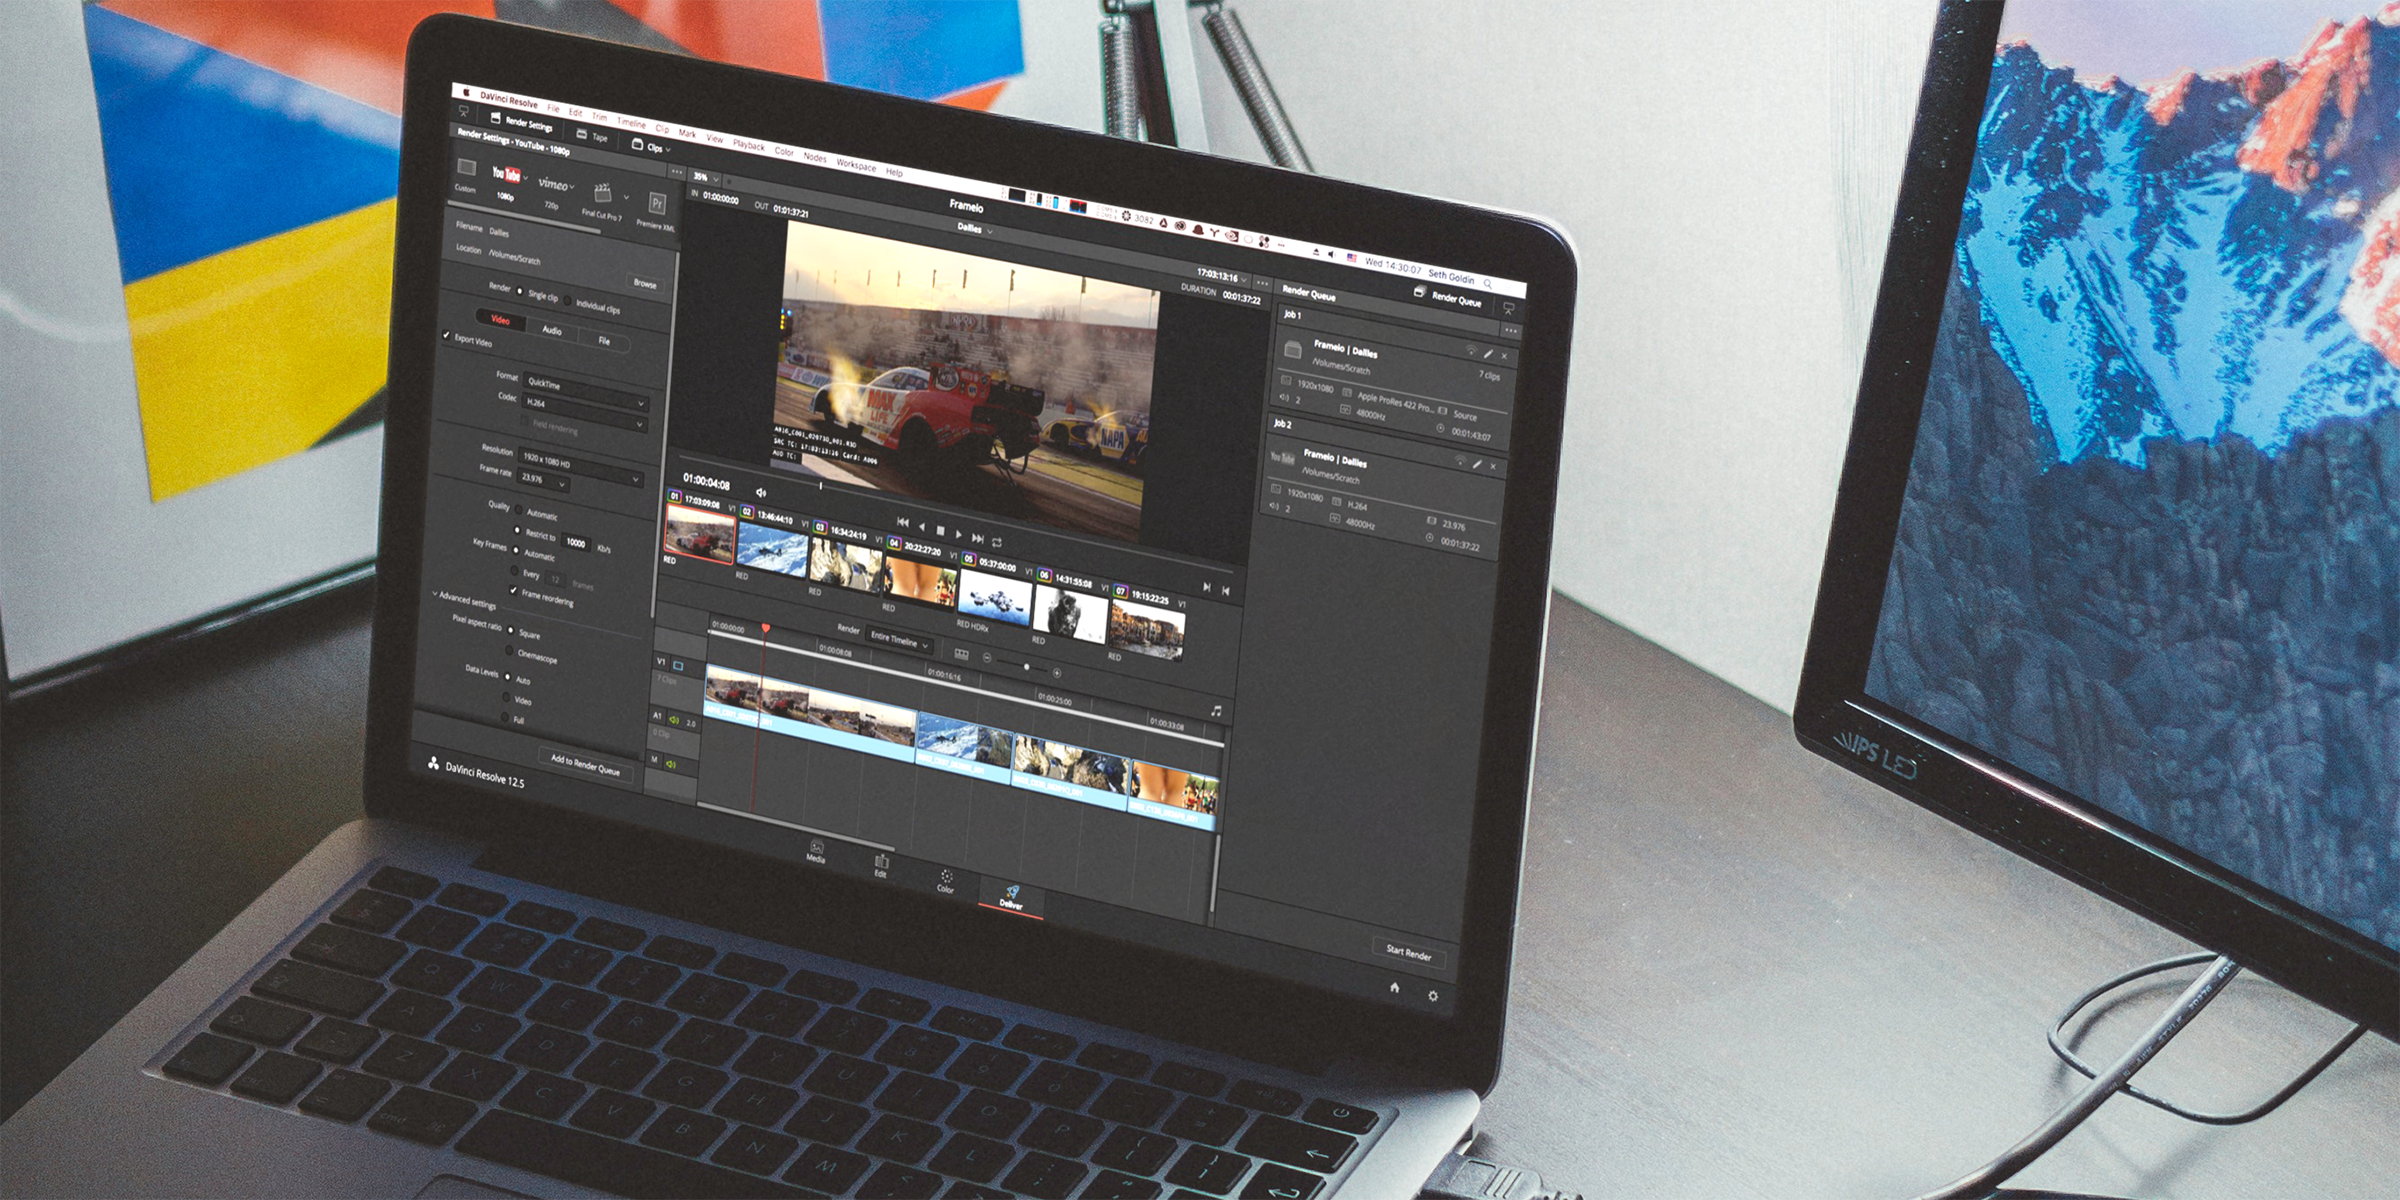 The Beginner's Guide to Conforming with DaVinci Resolve